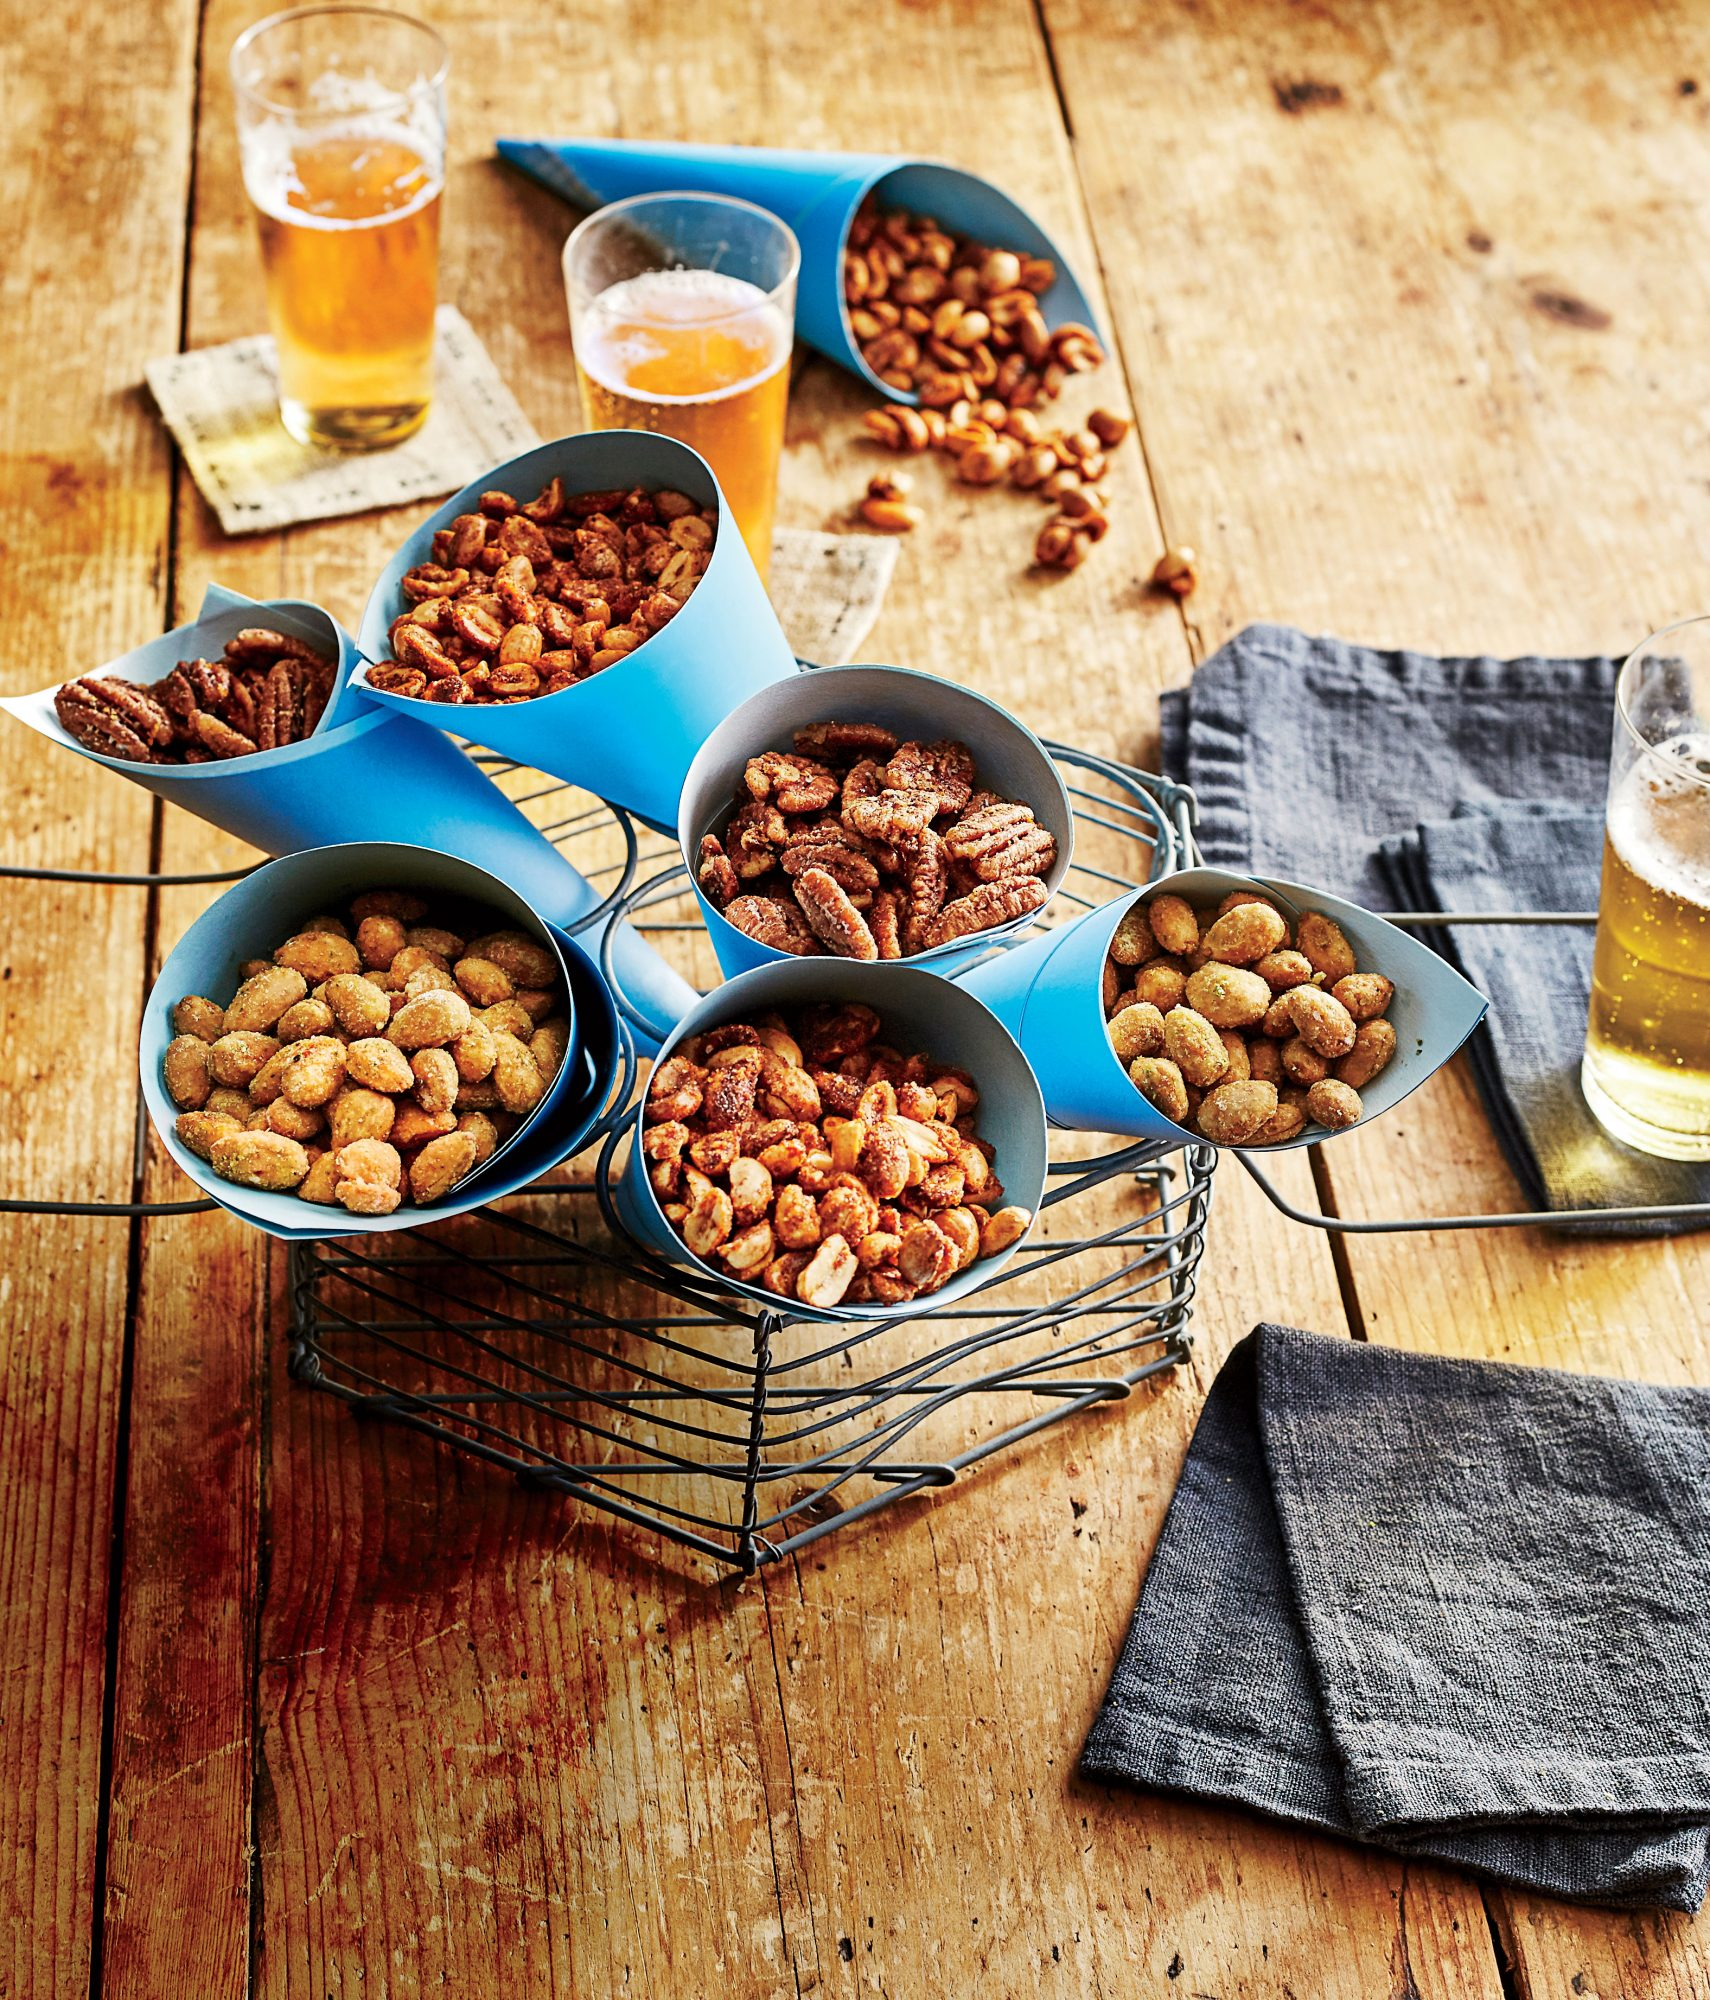 Hot-and-Sweet Fried Peanuts